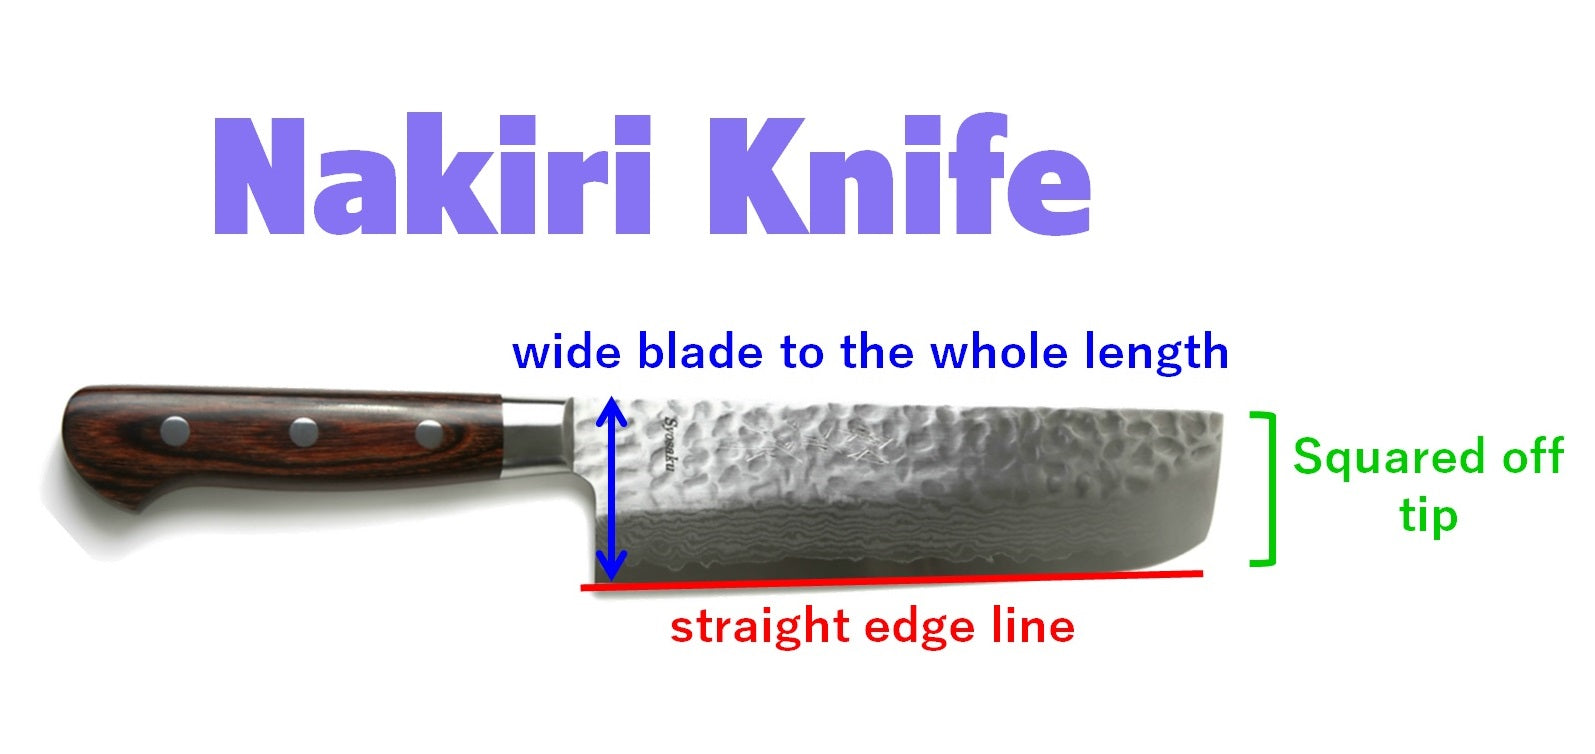 Shape of Nakiri knife